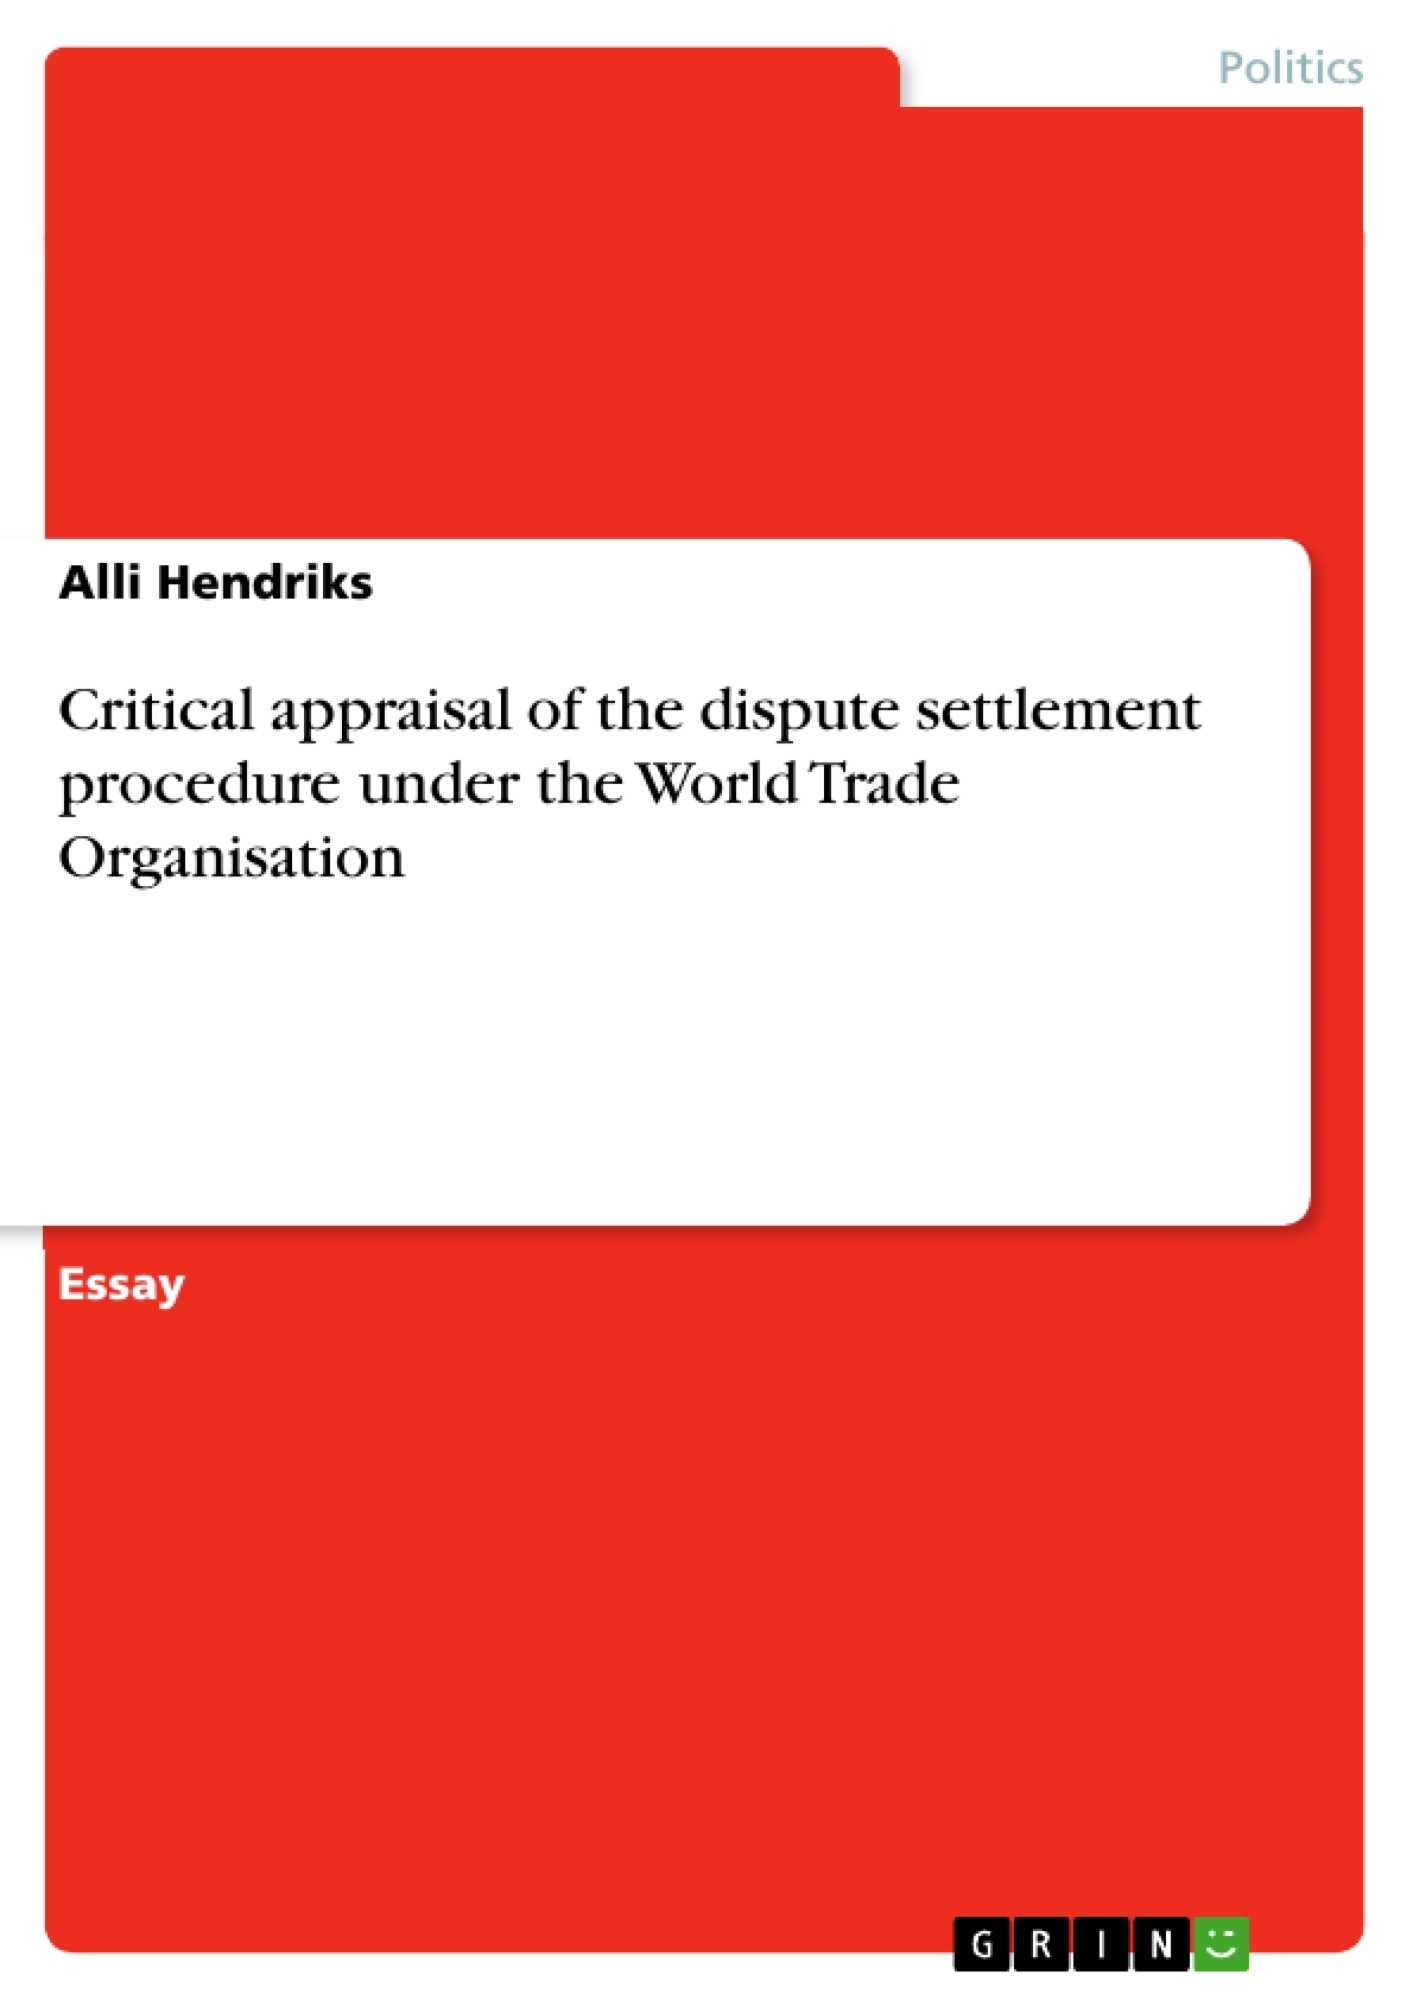 Title: Critical appraisal of the dispute settlement procedure under the World Trade Organisation